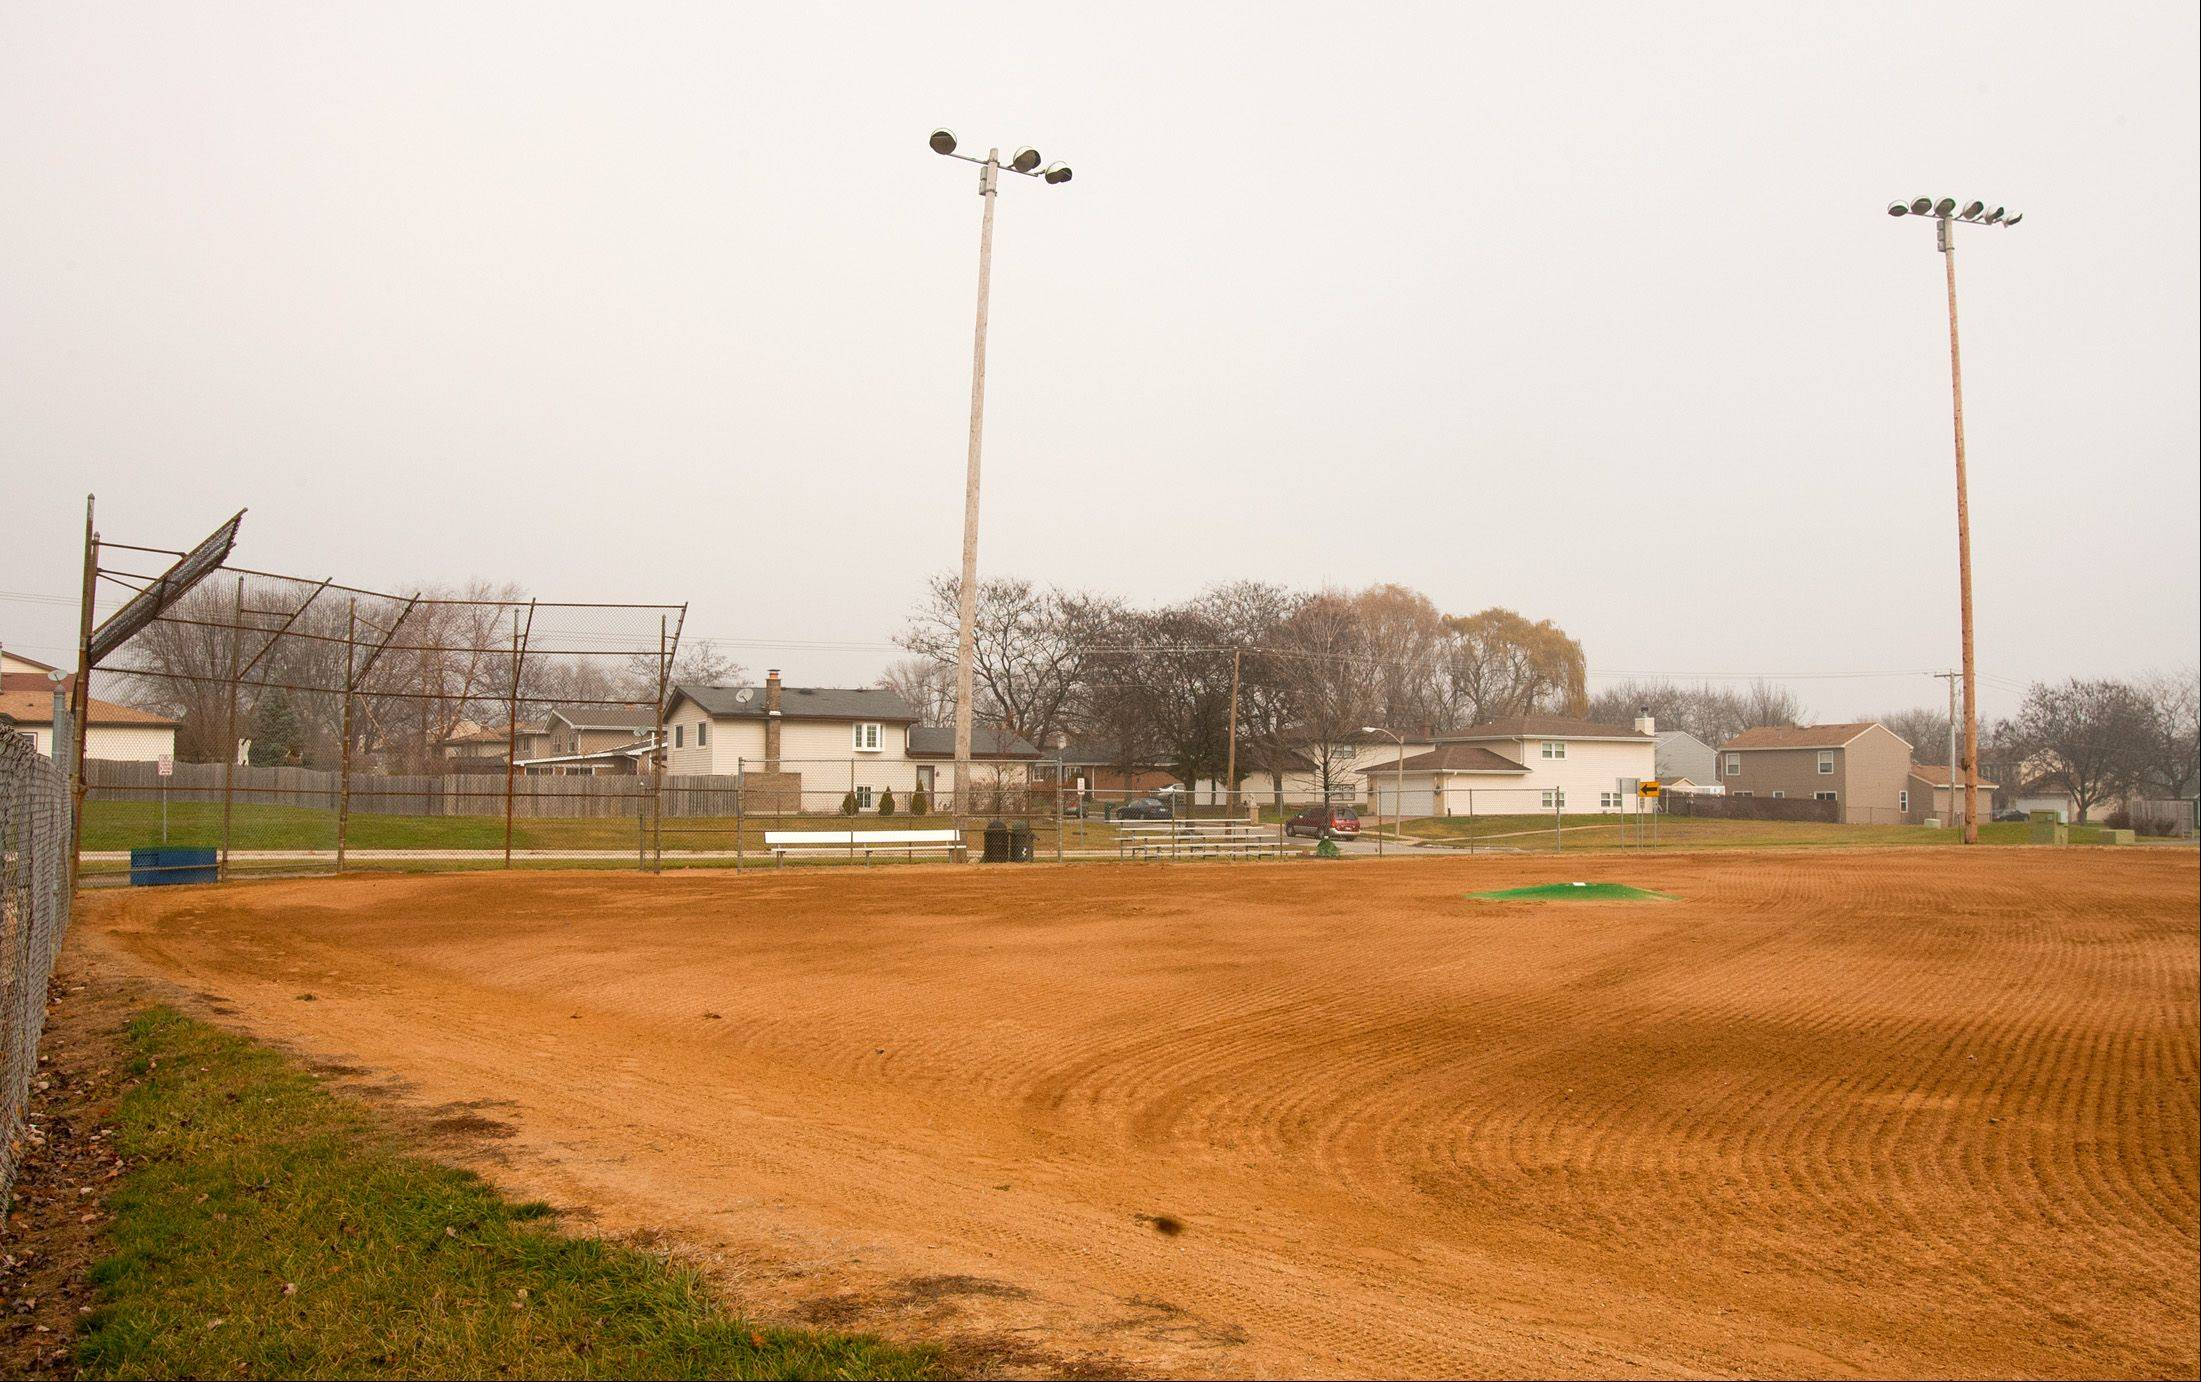 Proposed improvements to Armstrong Park in Carol Stream include renovations to Ray Nazillian Field in the park's northwest corner at an estimated cost of $190,000.